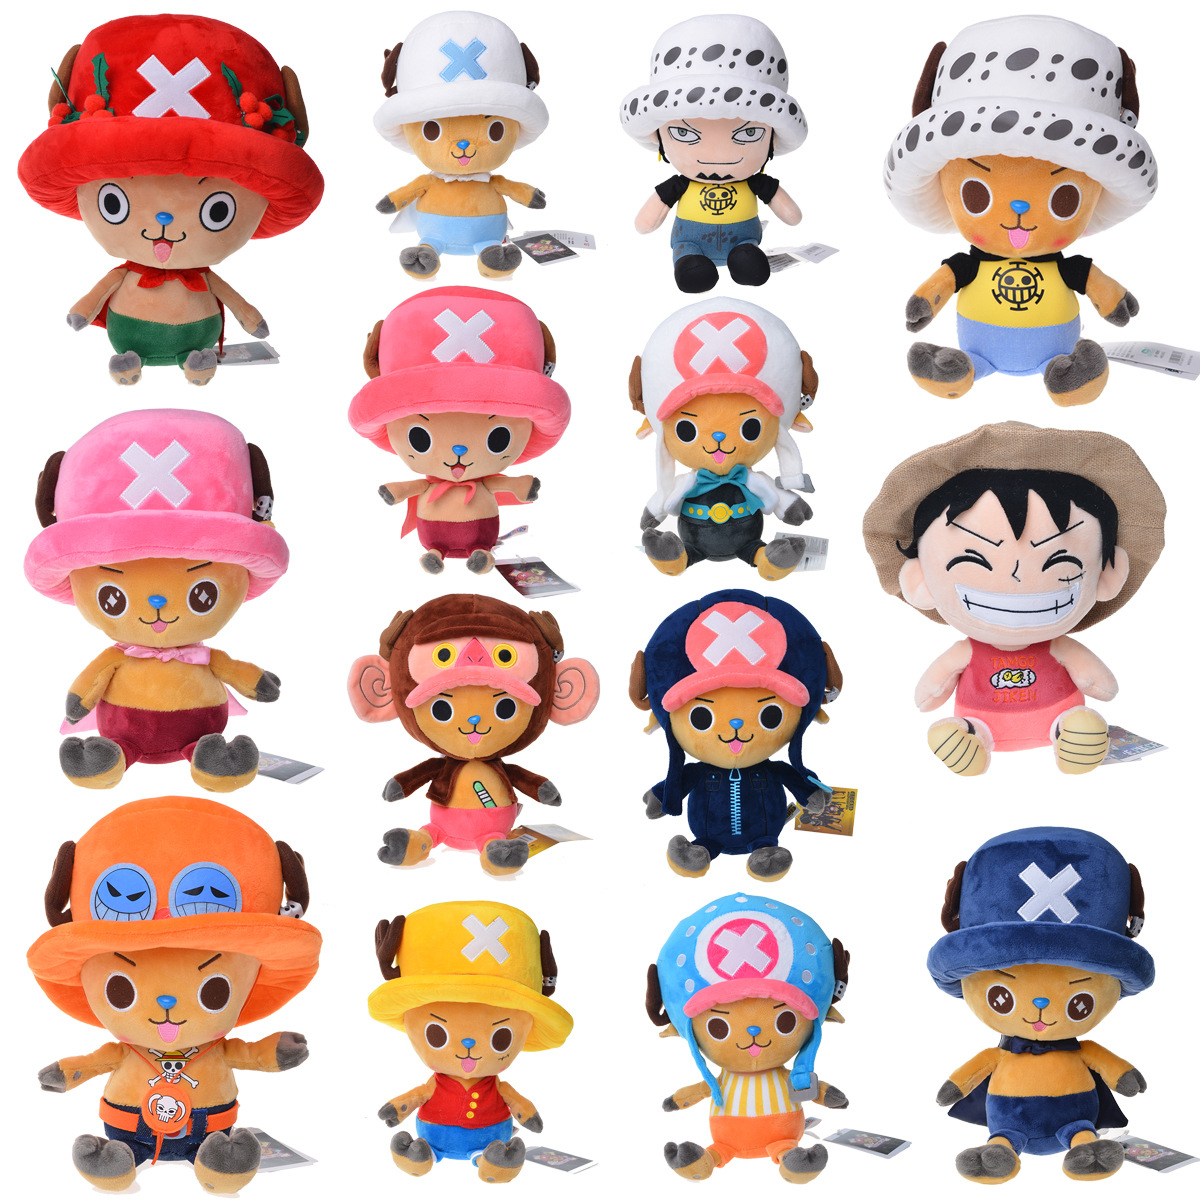 Stuffed One Piece Plush Doll Soft PP Cotton Cute Pet Cushion Luffy Chopper Cosplay Law Sabo Sanji Plush Toys Natural  One Piece